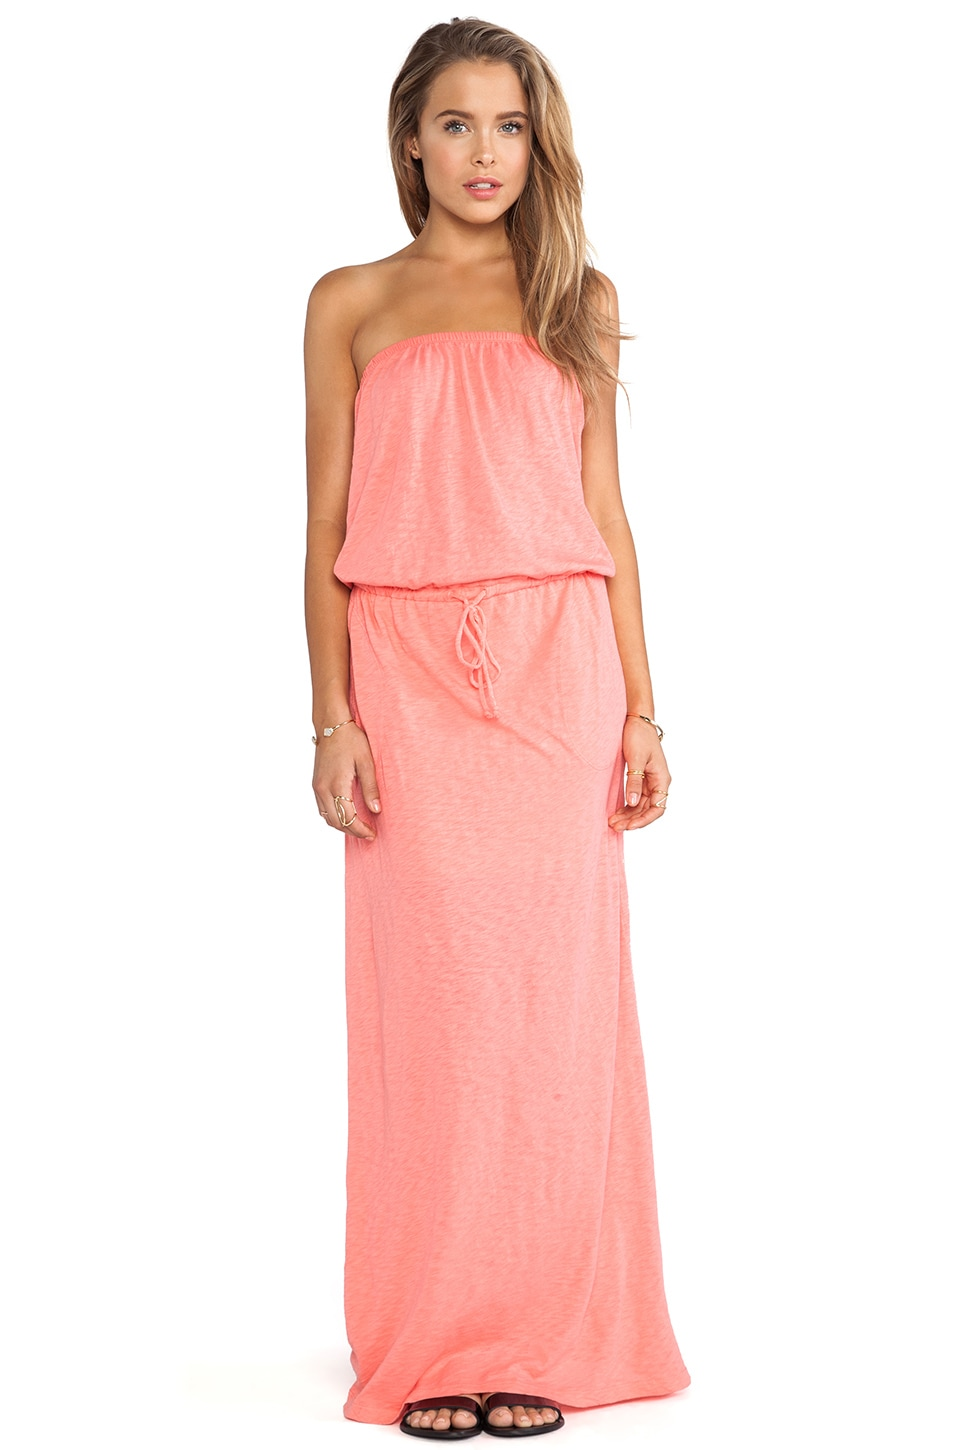 C&C California Maxi Dress in Gumball Pink